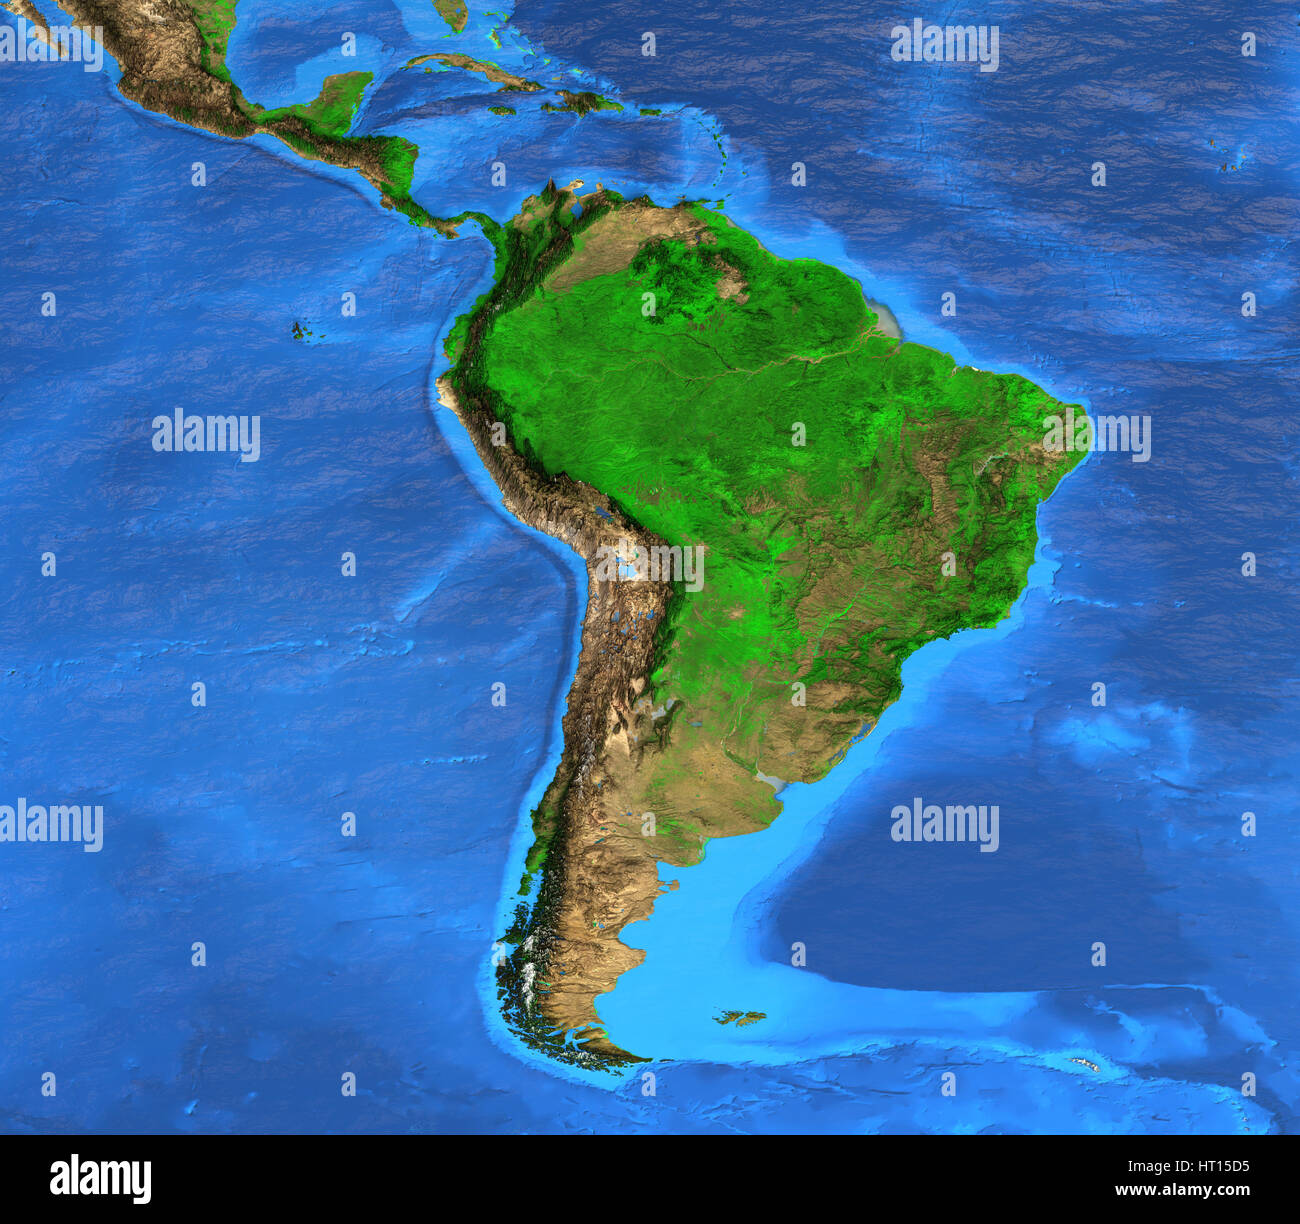 Detailed satellite view of the Earth and its landforms. South ... on top 10 vacation destinations in south america, weather map south america, us map of the united states of america, earth map south america, fjords south america, road map south america, topo map south america, topographical map south america, geological map south america, geographical map south america, hotels south america, sports south america, water map south america, tourism south america, russia south america, relief map south america, world map south america, rio de la plata river map south america, digital map south america,